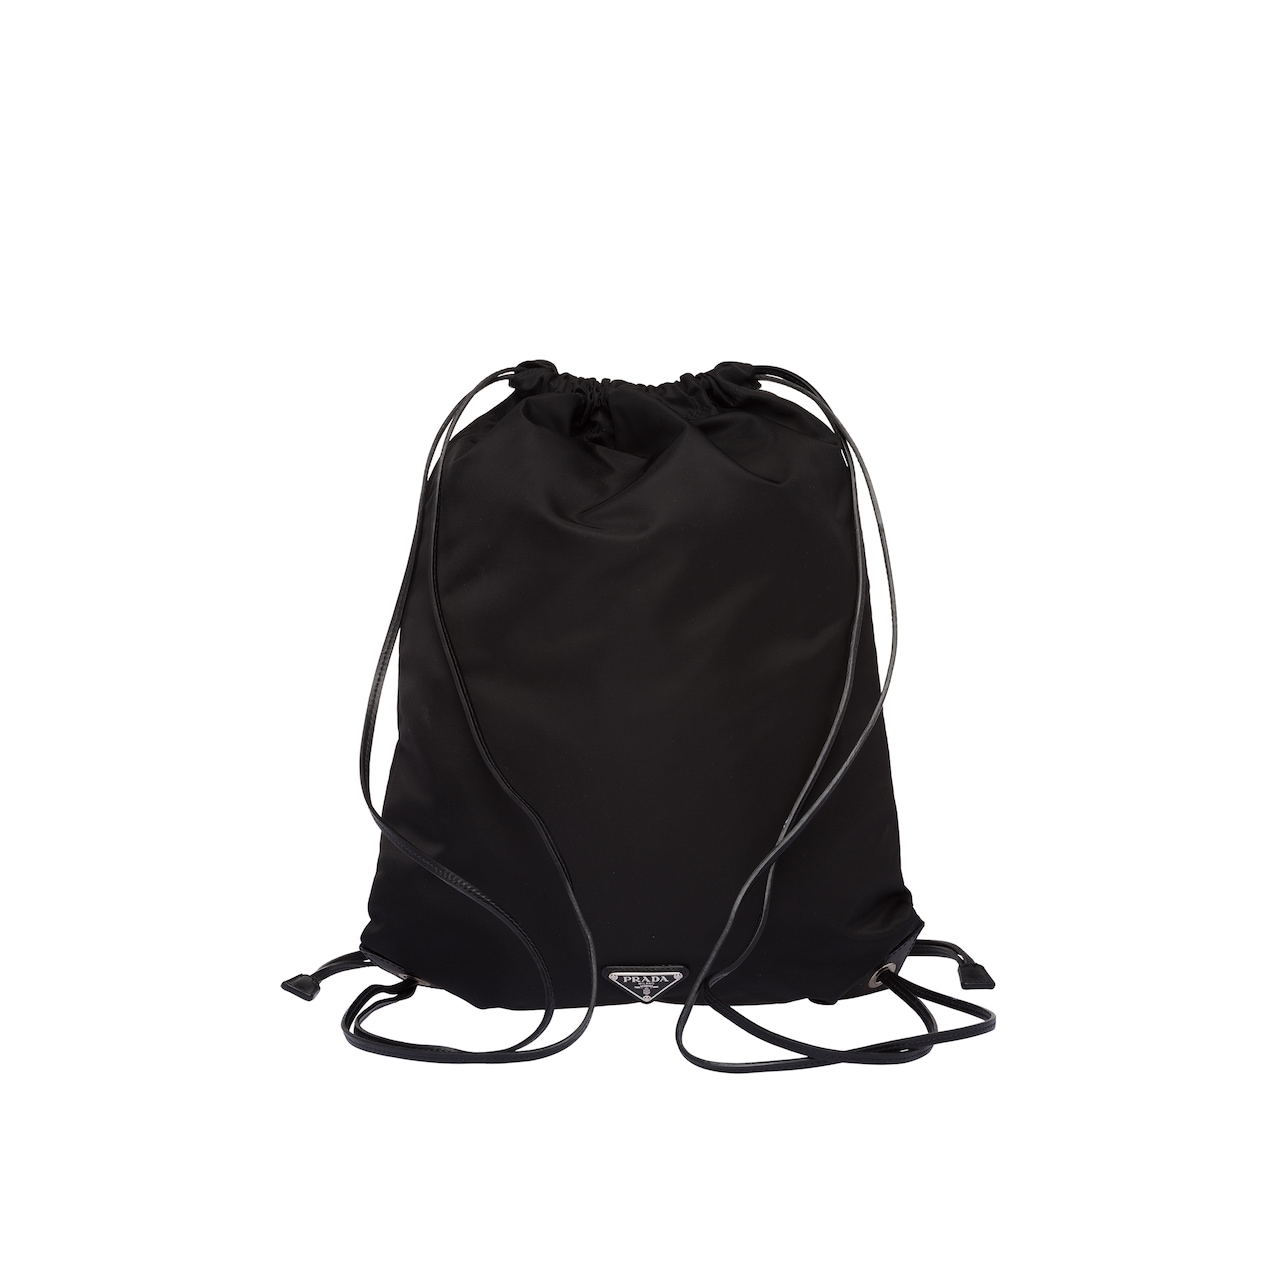 Saffiano leather and fabric backpack